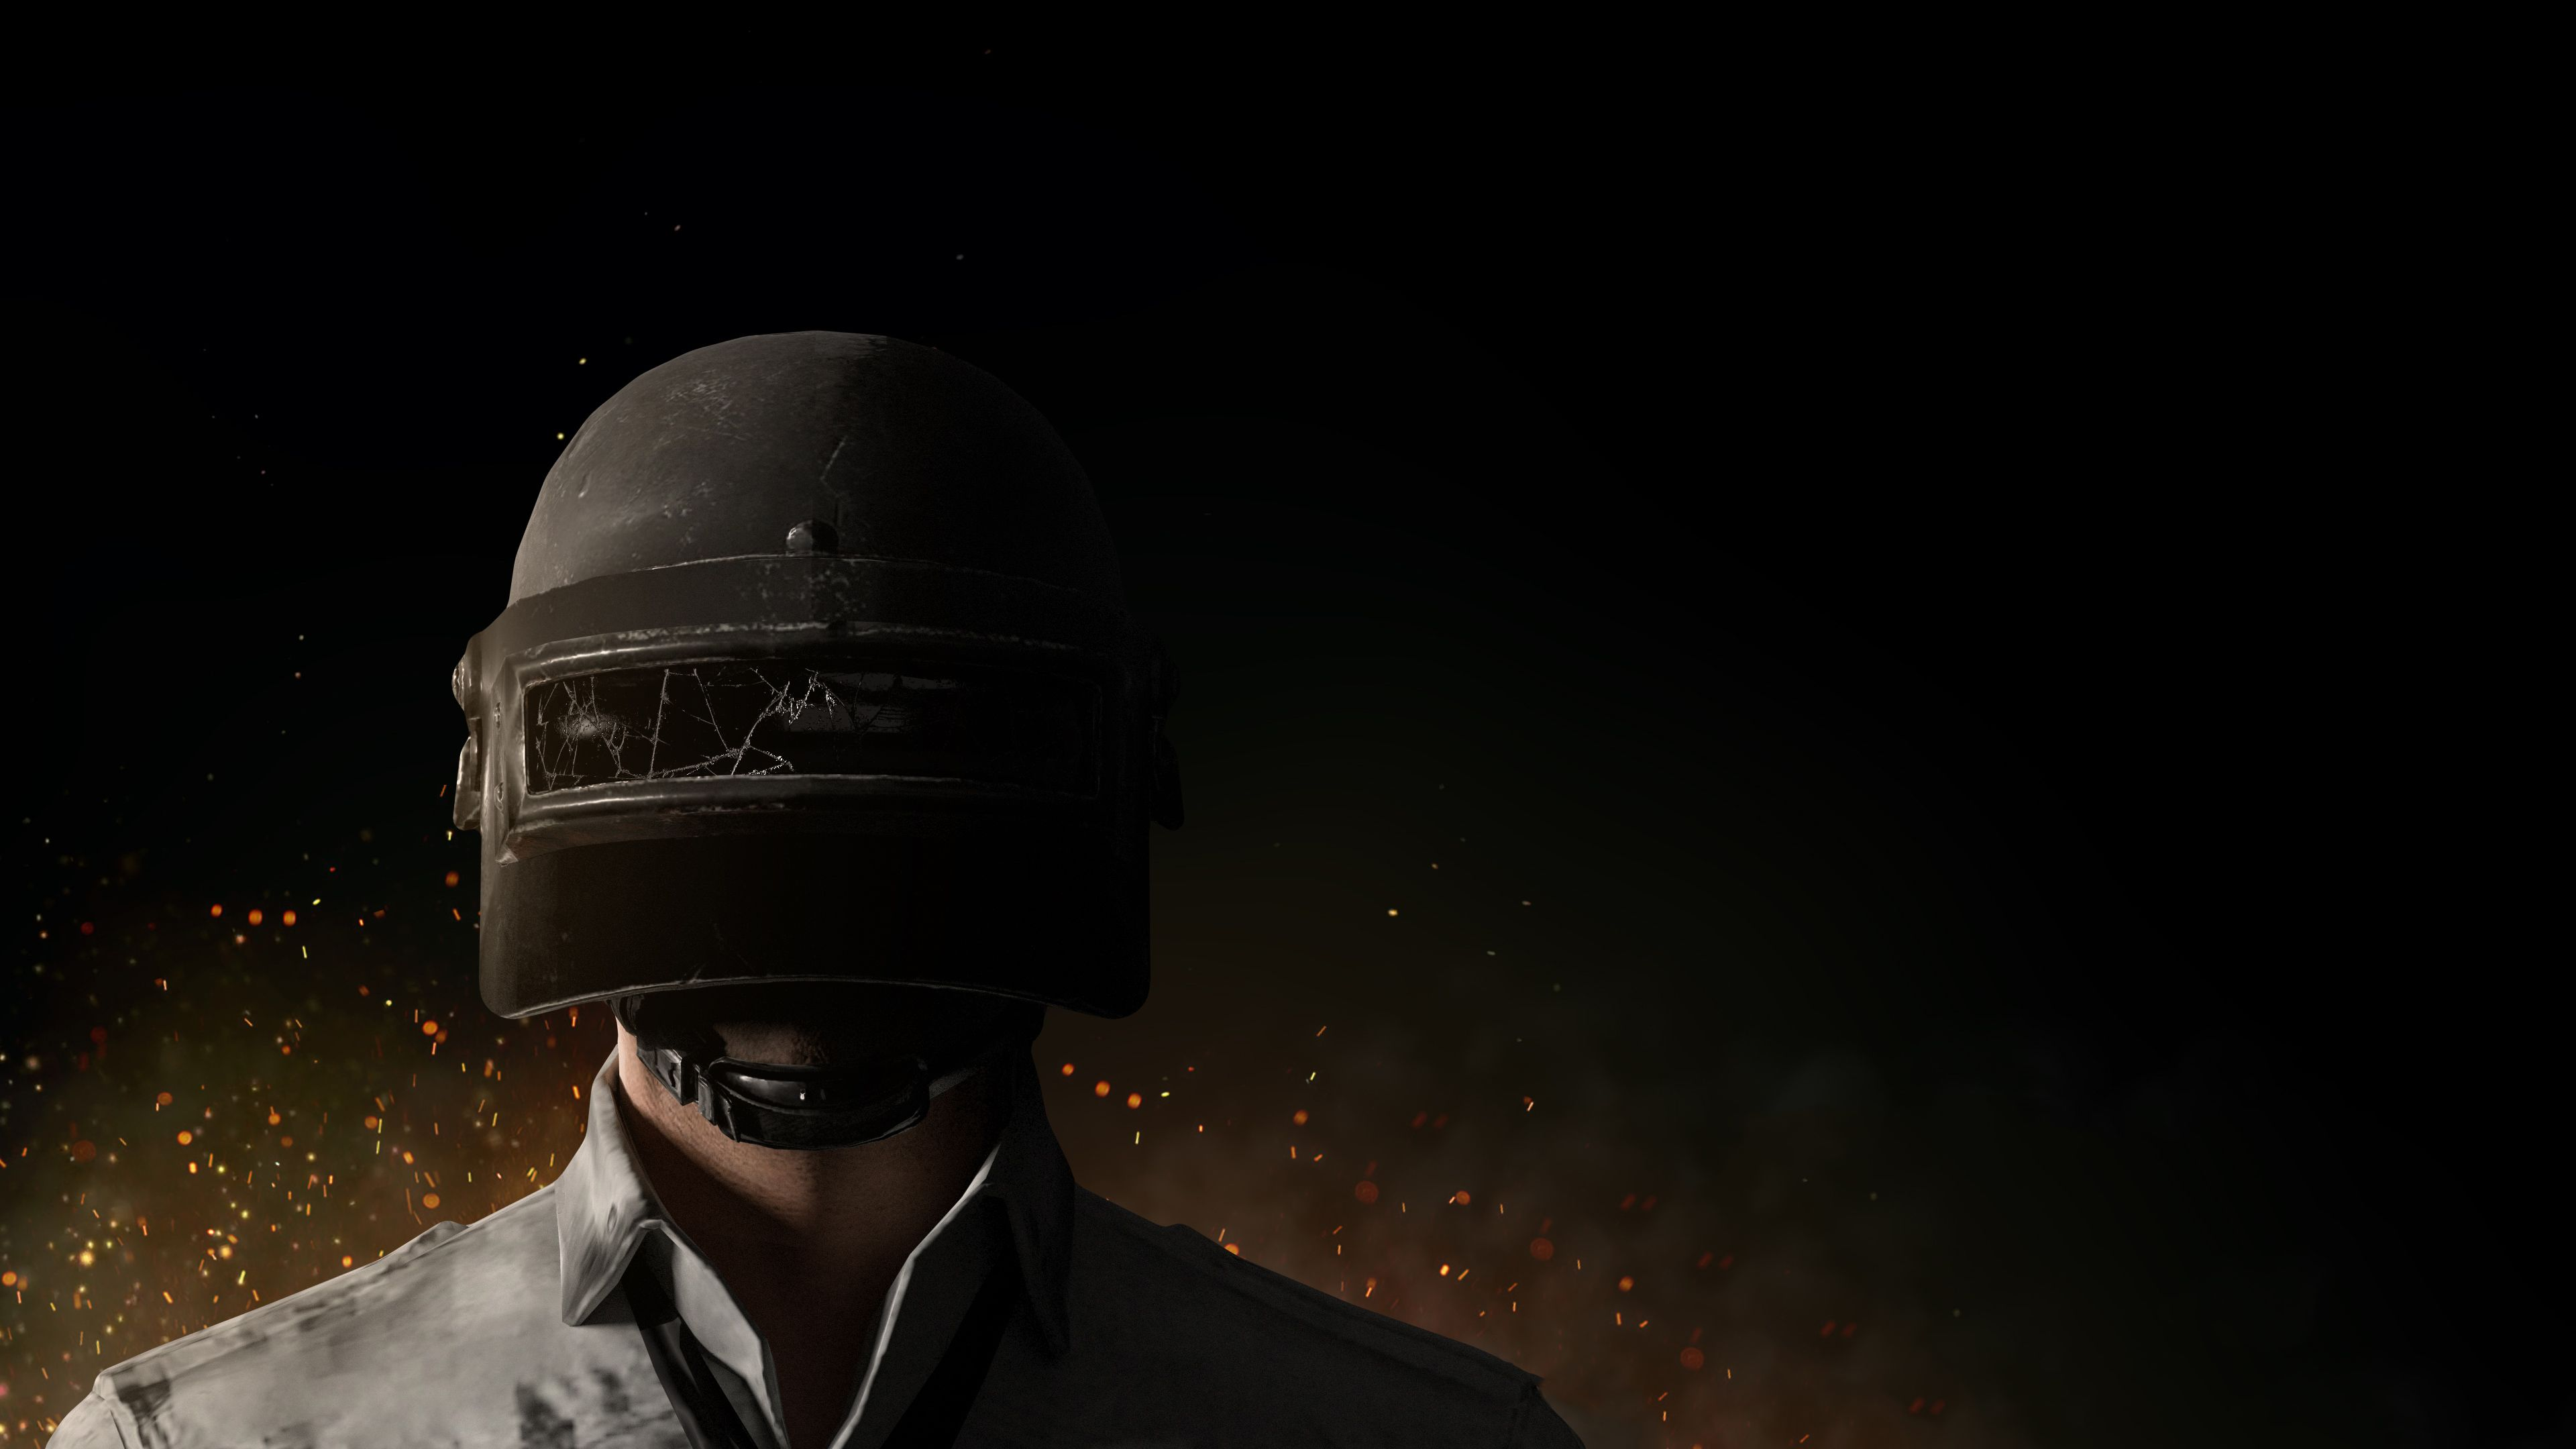 PUBG Helmet Guy 4k Pubg Wallpapers, Playerunknowns